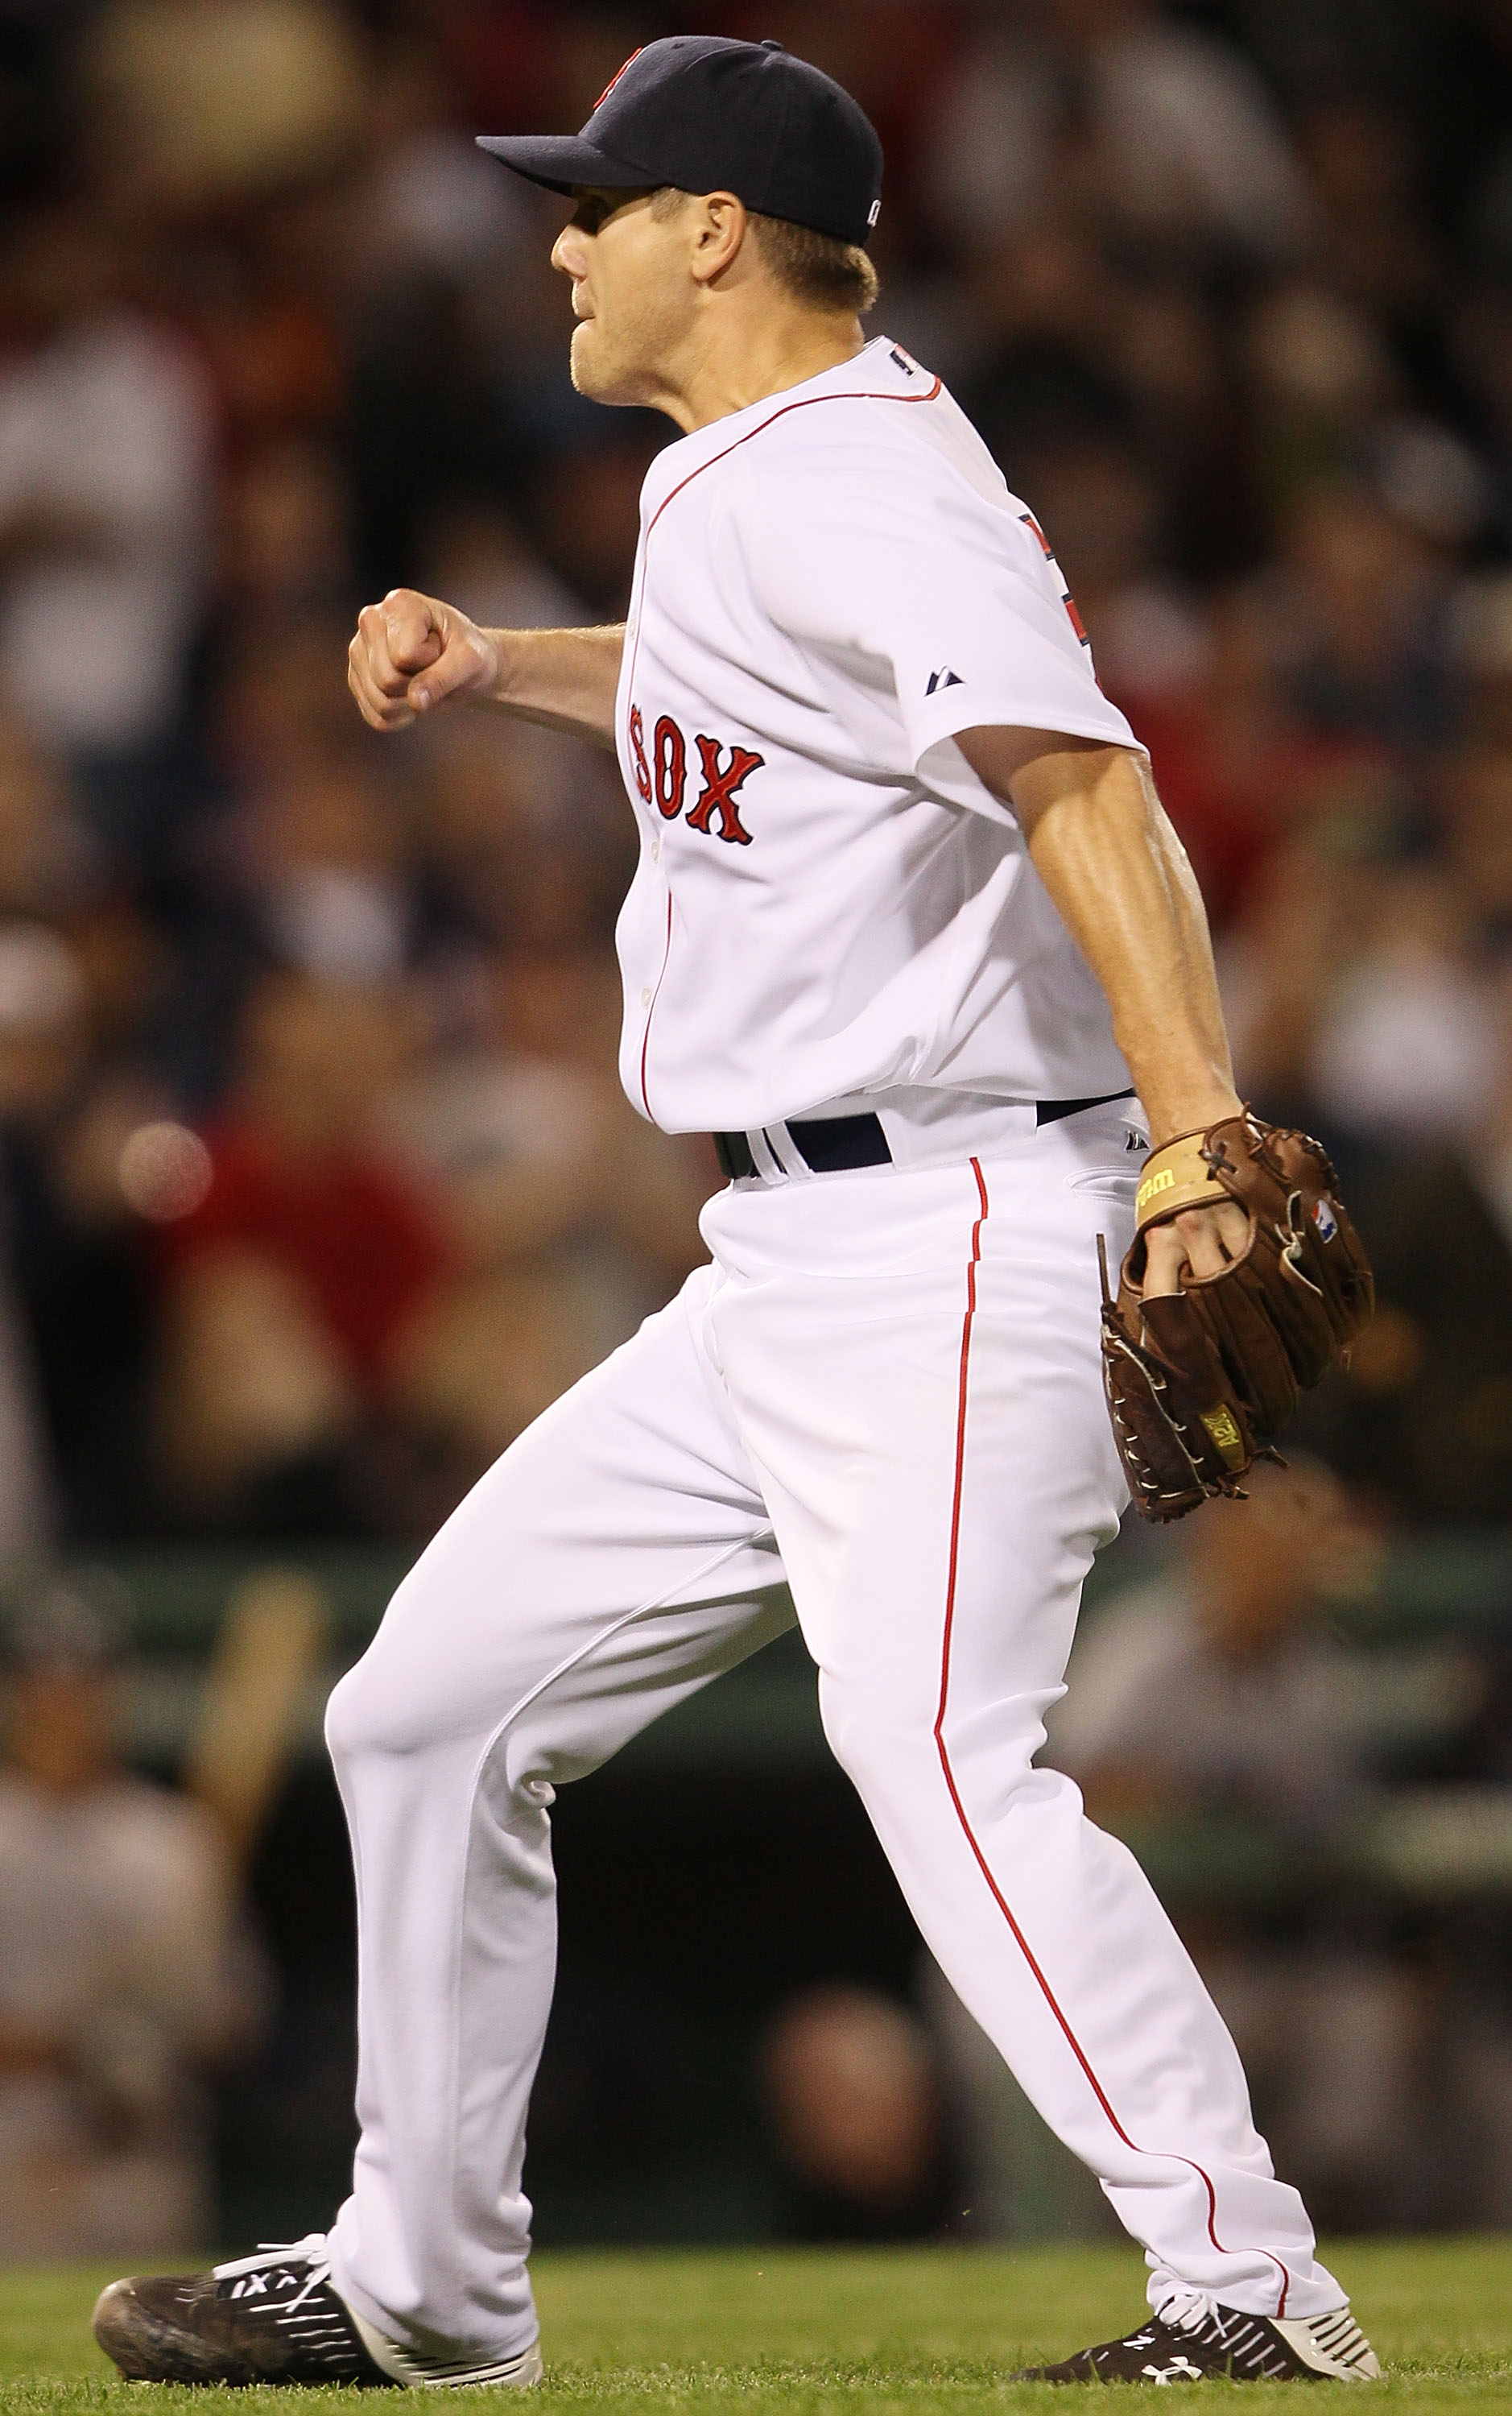 BOSTON - APRIL 04:  Jonathan Papelbon #58 of the Boston Red Sox celebrates the last out and the win over the New York Yankees on April 4, 2010 during Opening Night at Fenway Park in Boston, Massachusetts. The Red Sox defeated the Yankees 9-7.  (Photo by E